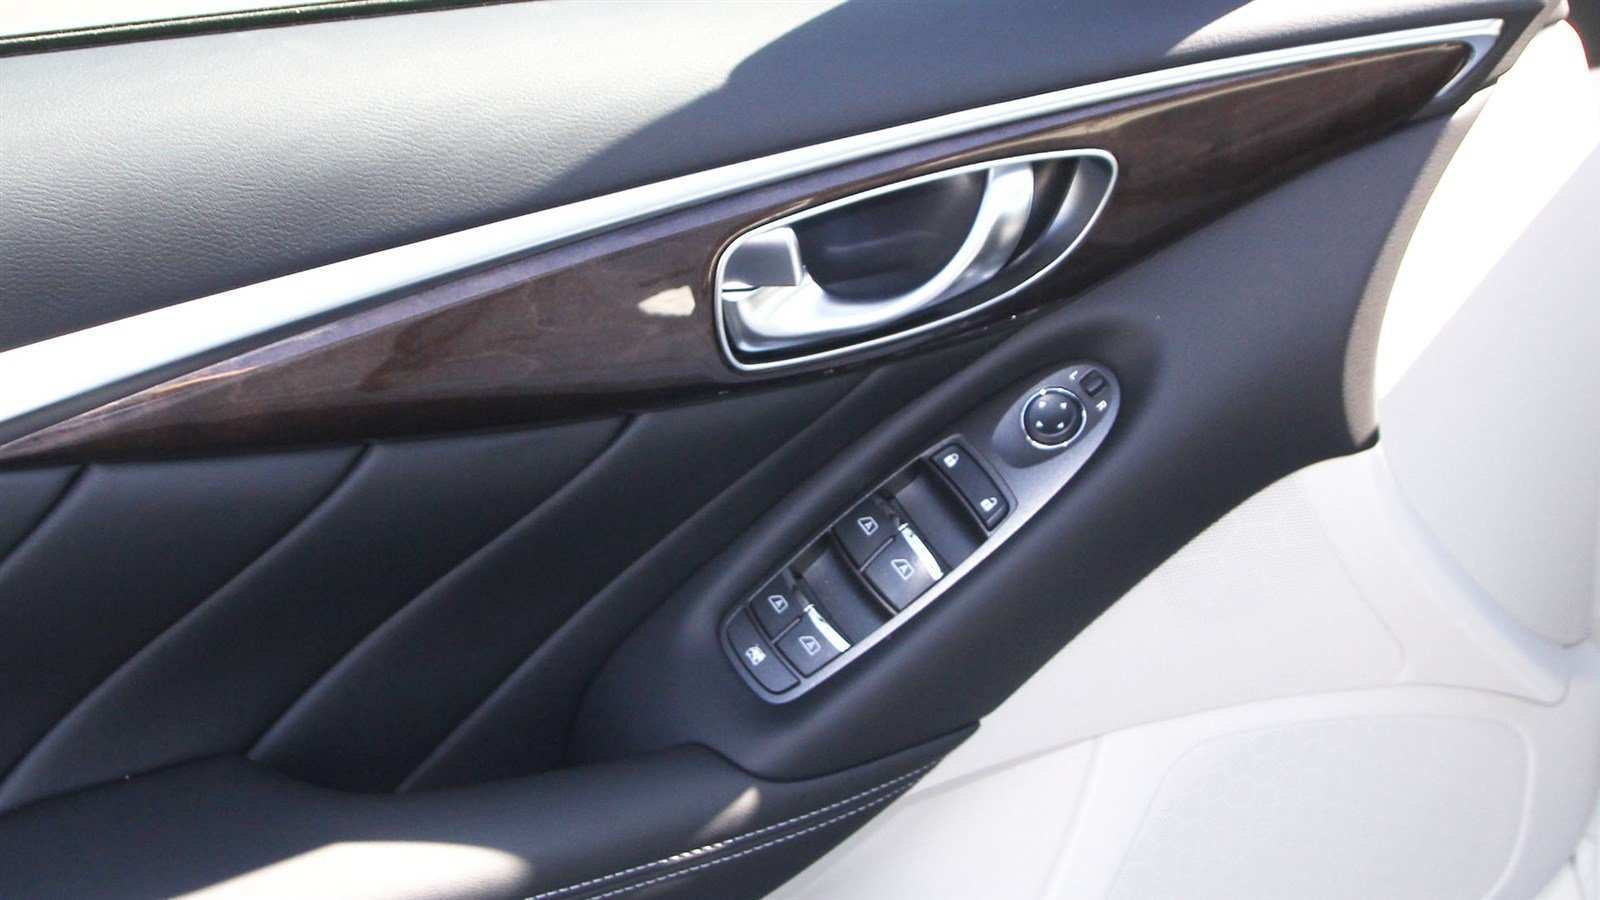 69 Best Review 2020 Infiniti Qx50 Luxe New Concept Interior with 2020 Infiniti Qx50 Luxe New Concept